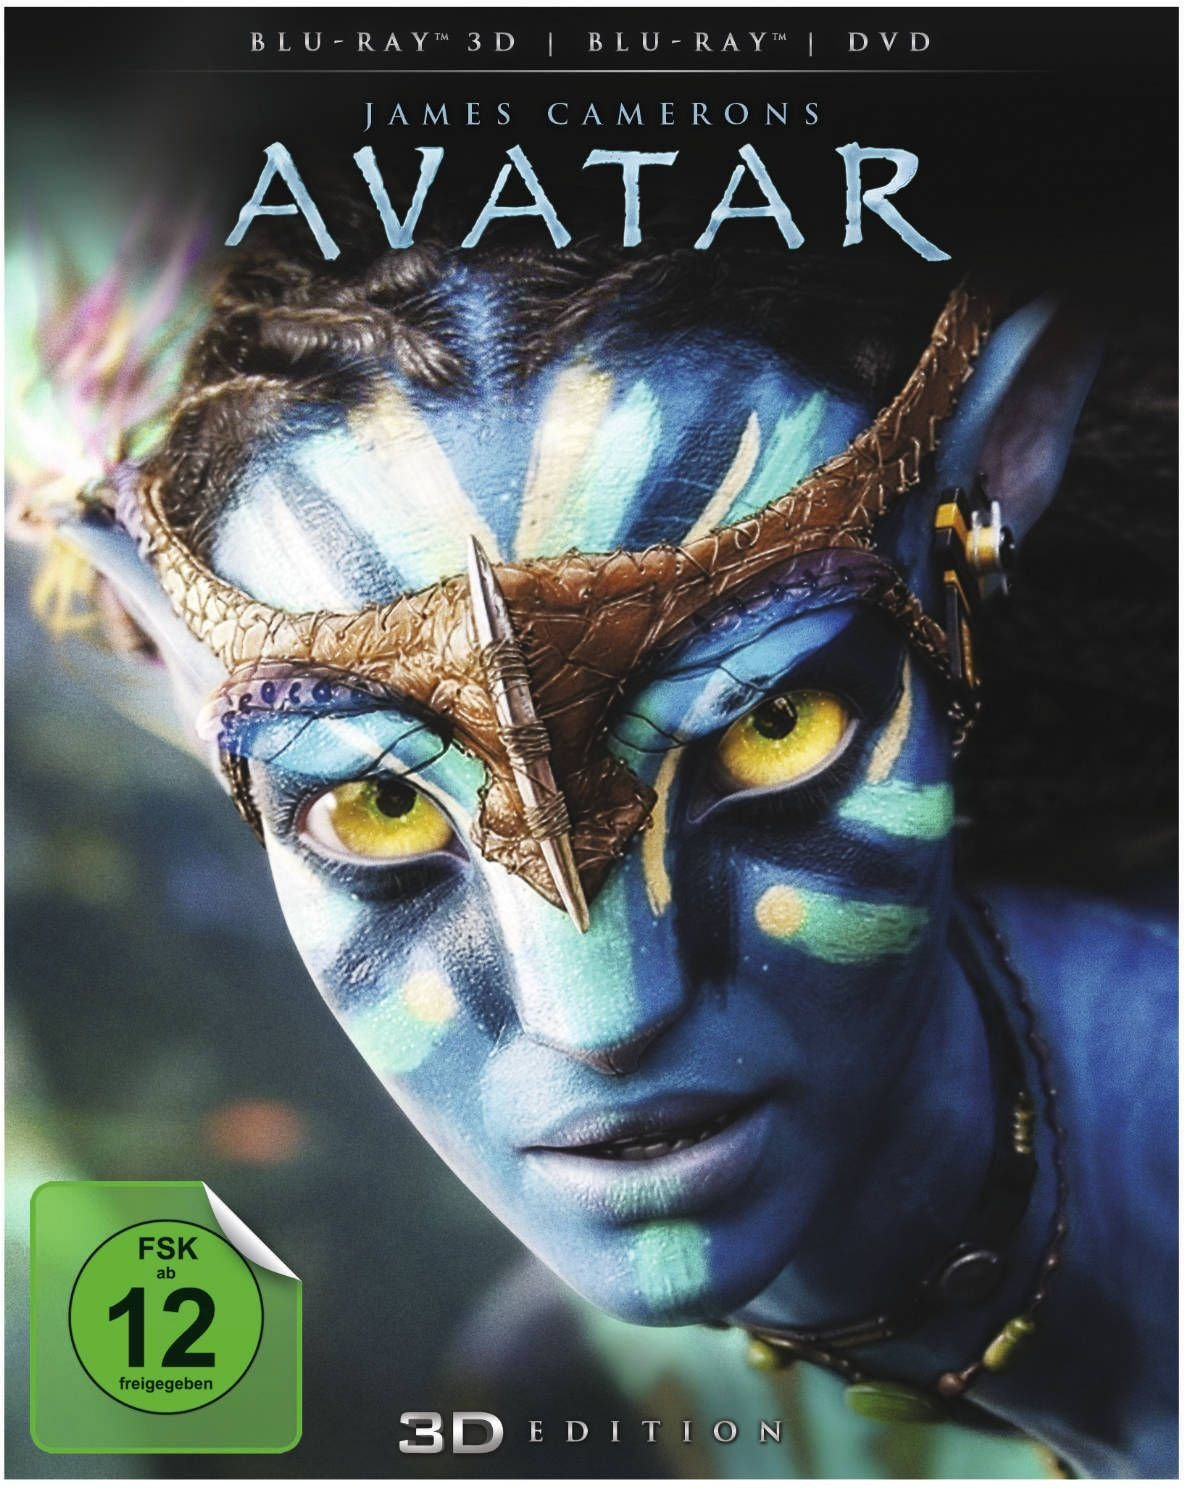 [amazon.de] Avatar 3D Blue Ray um 12,83€